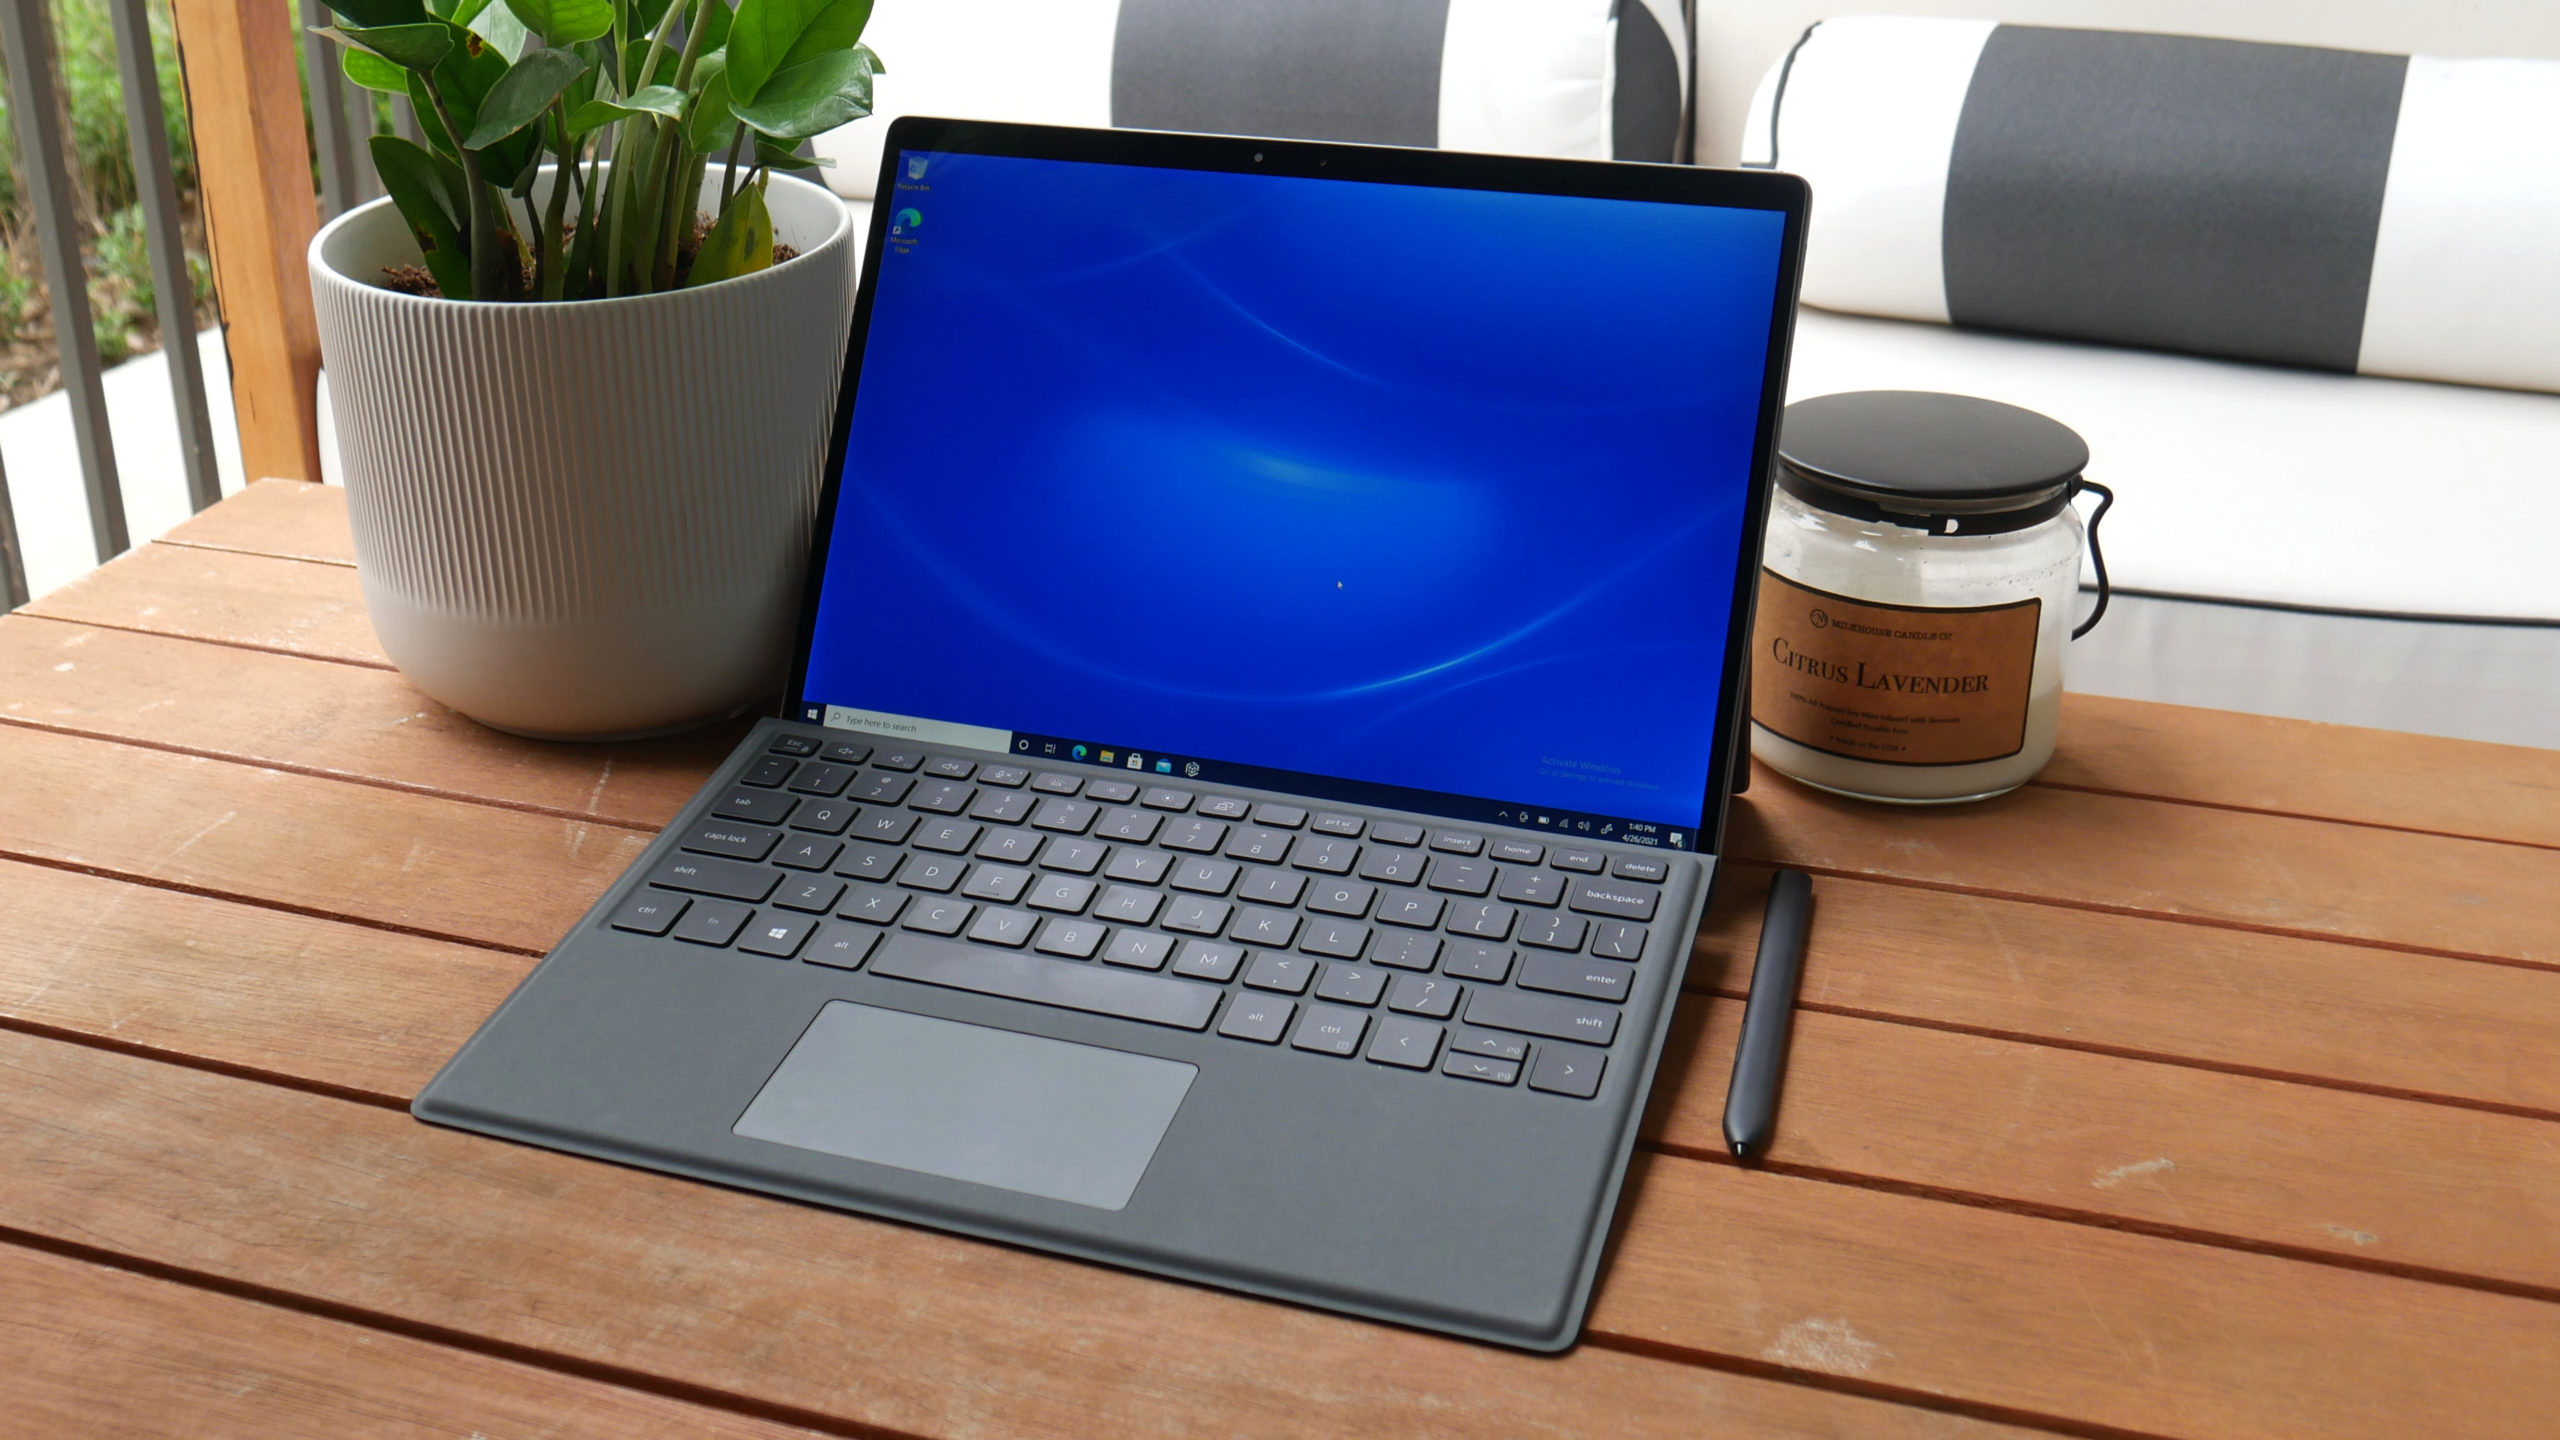 Dell Latitude 7320 Detachable review: Outclassing the Surface Pro